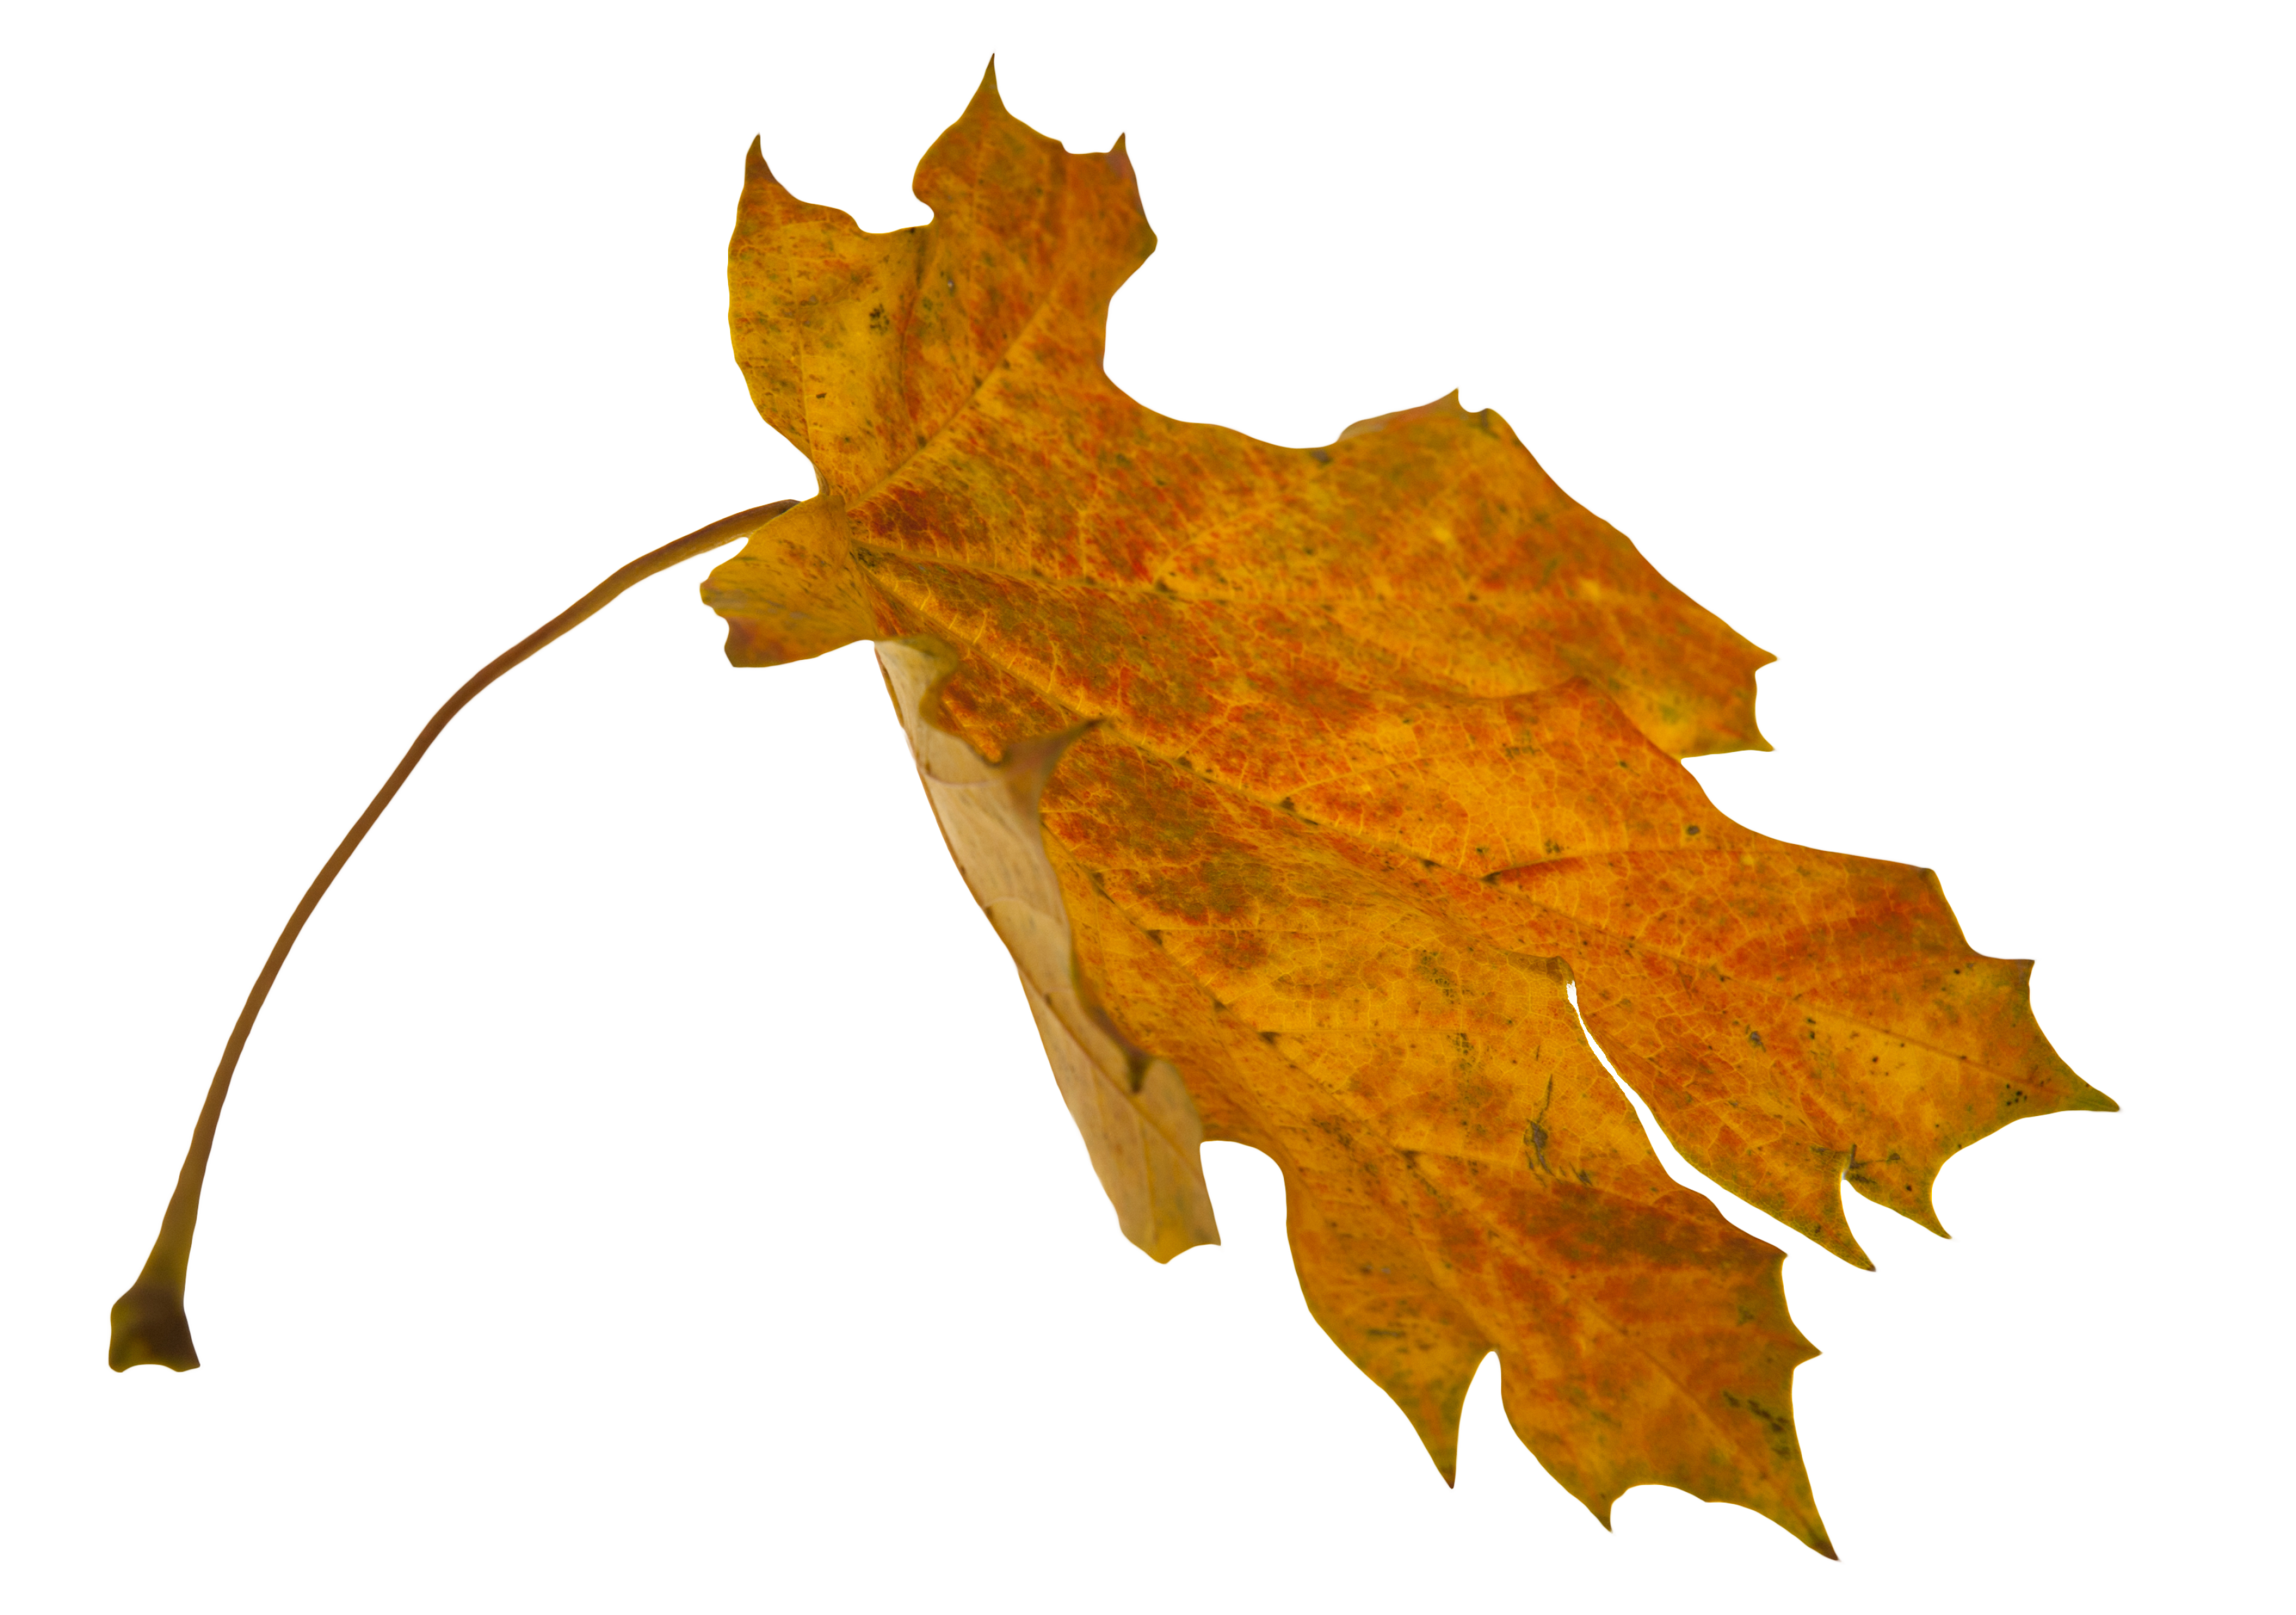 Png falling leaves overlay. Leaf overlays turn your